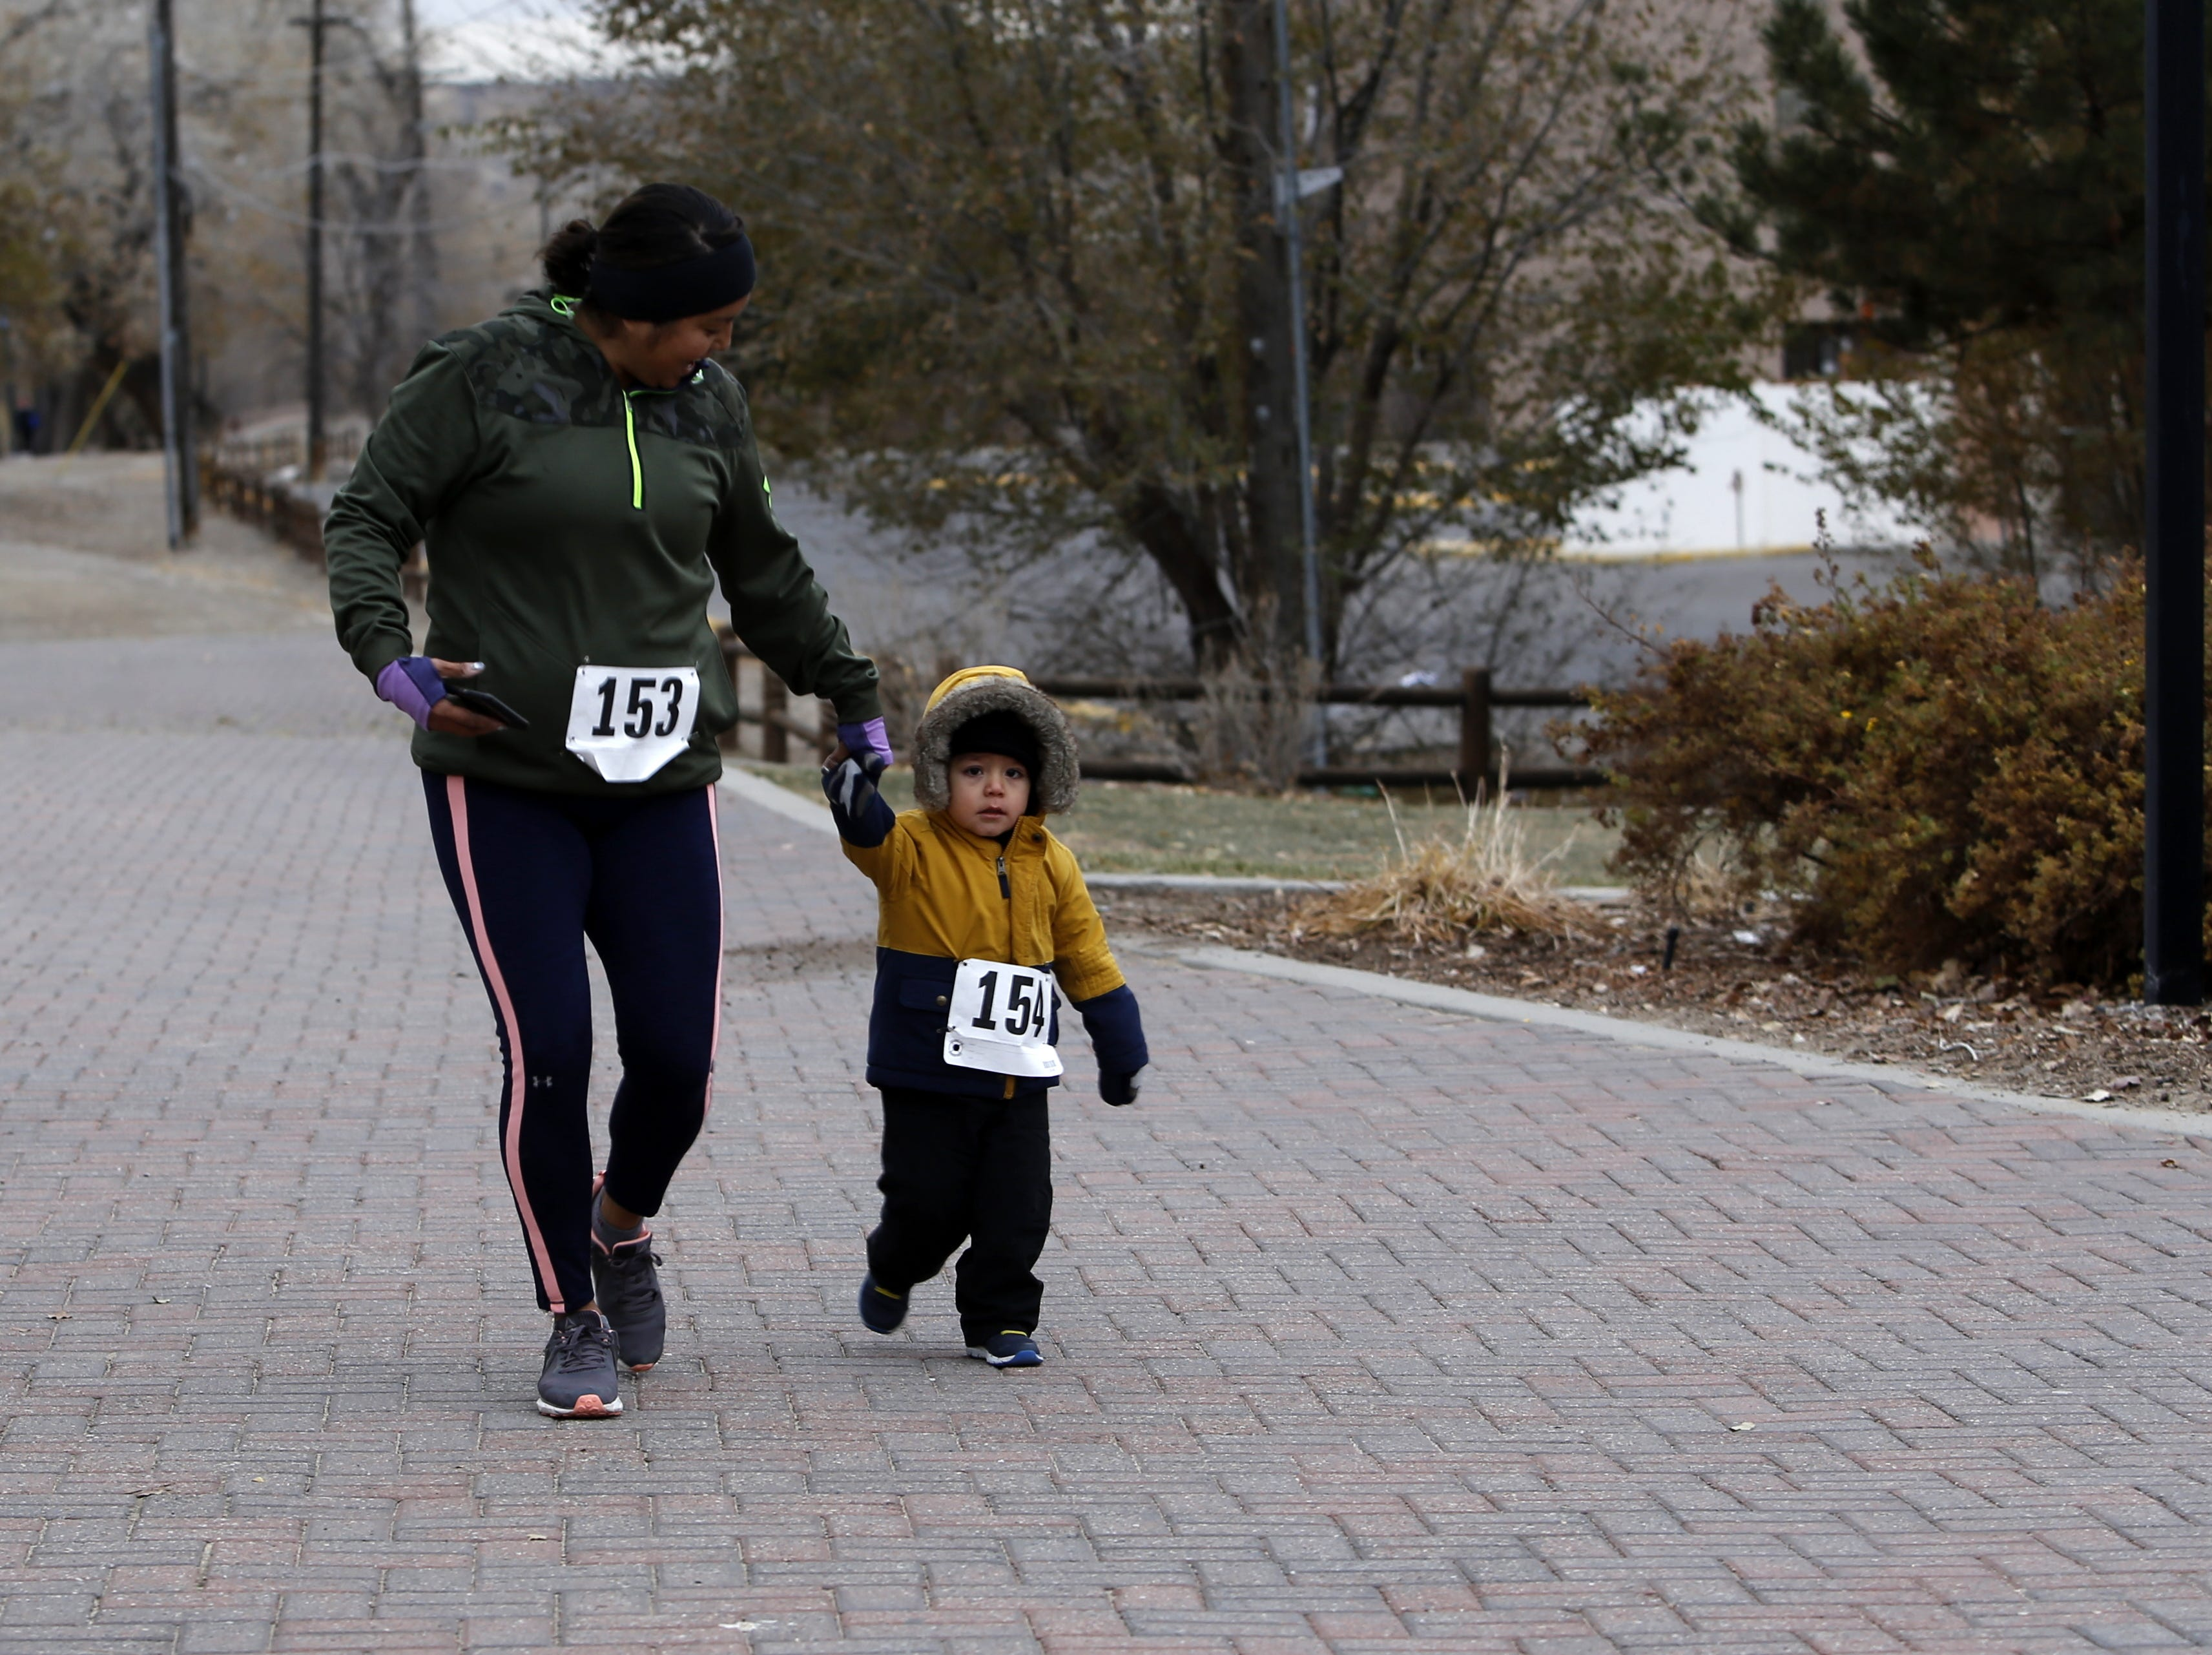 Tasha Cloyd and Logan, 2, participate in the Gratitude Run, Thursday, Nov. 22, 2018, in Berg Park in Farmington.